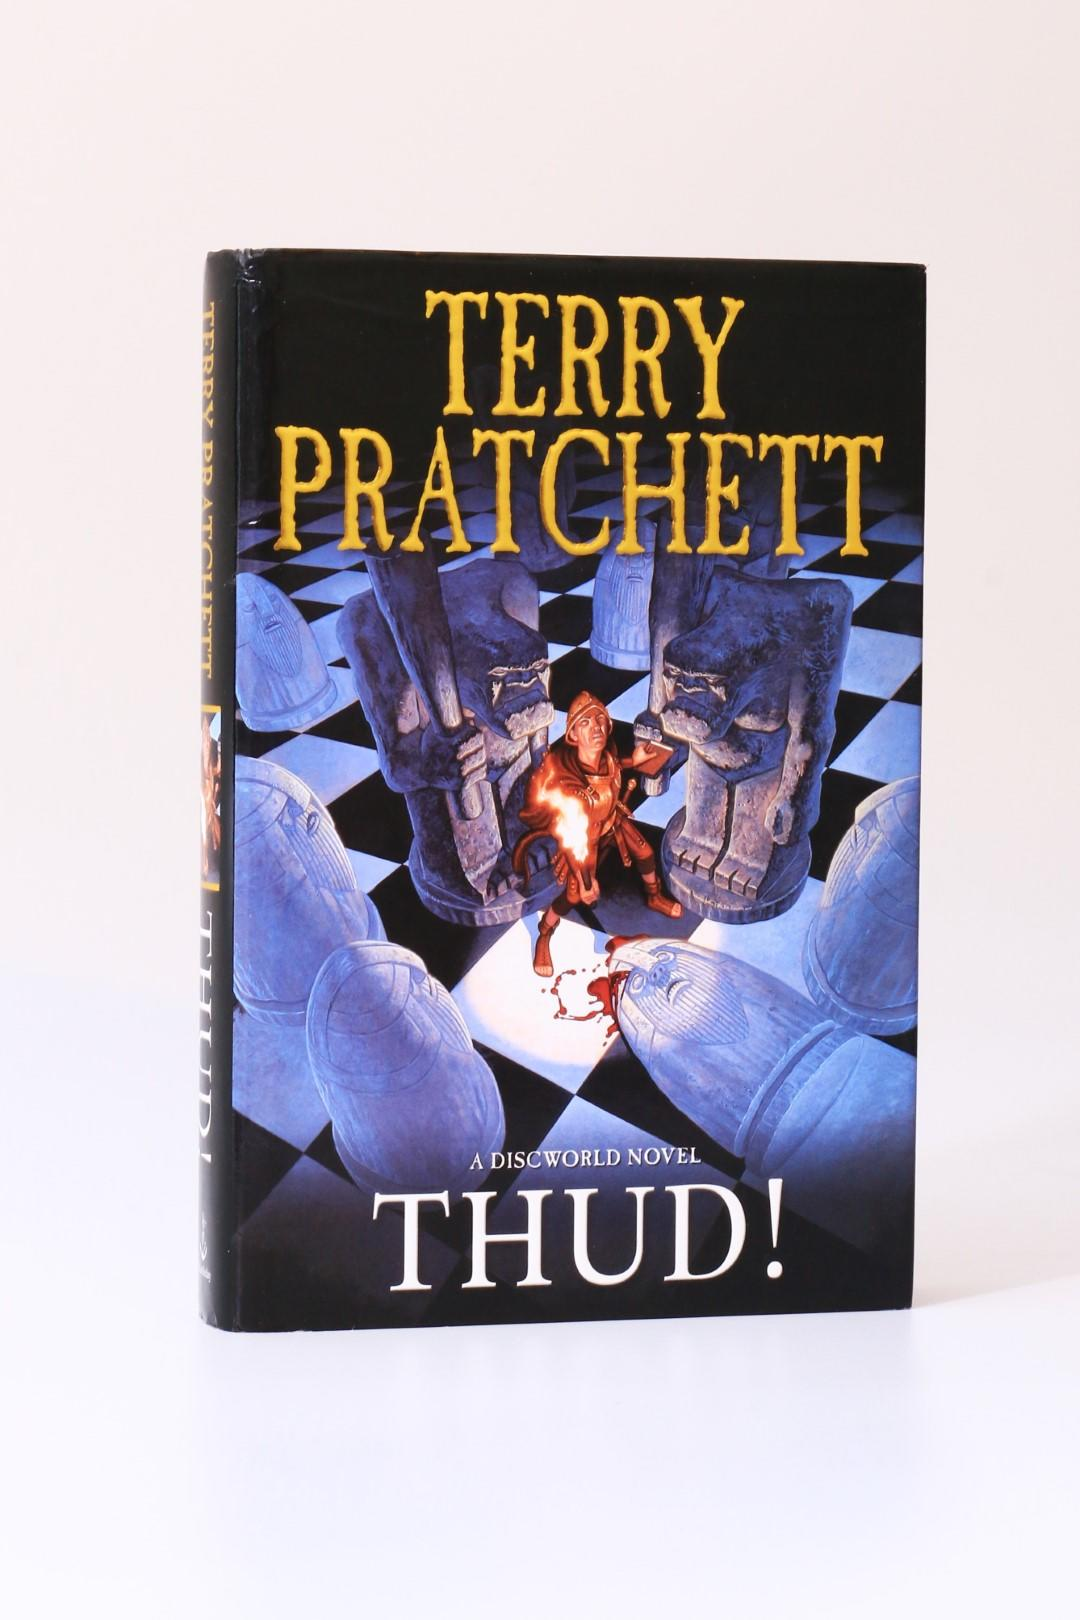 Terry Pratchett - Thud! - Doubleday, 2005, First Edition.